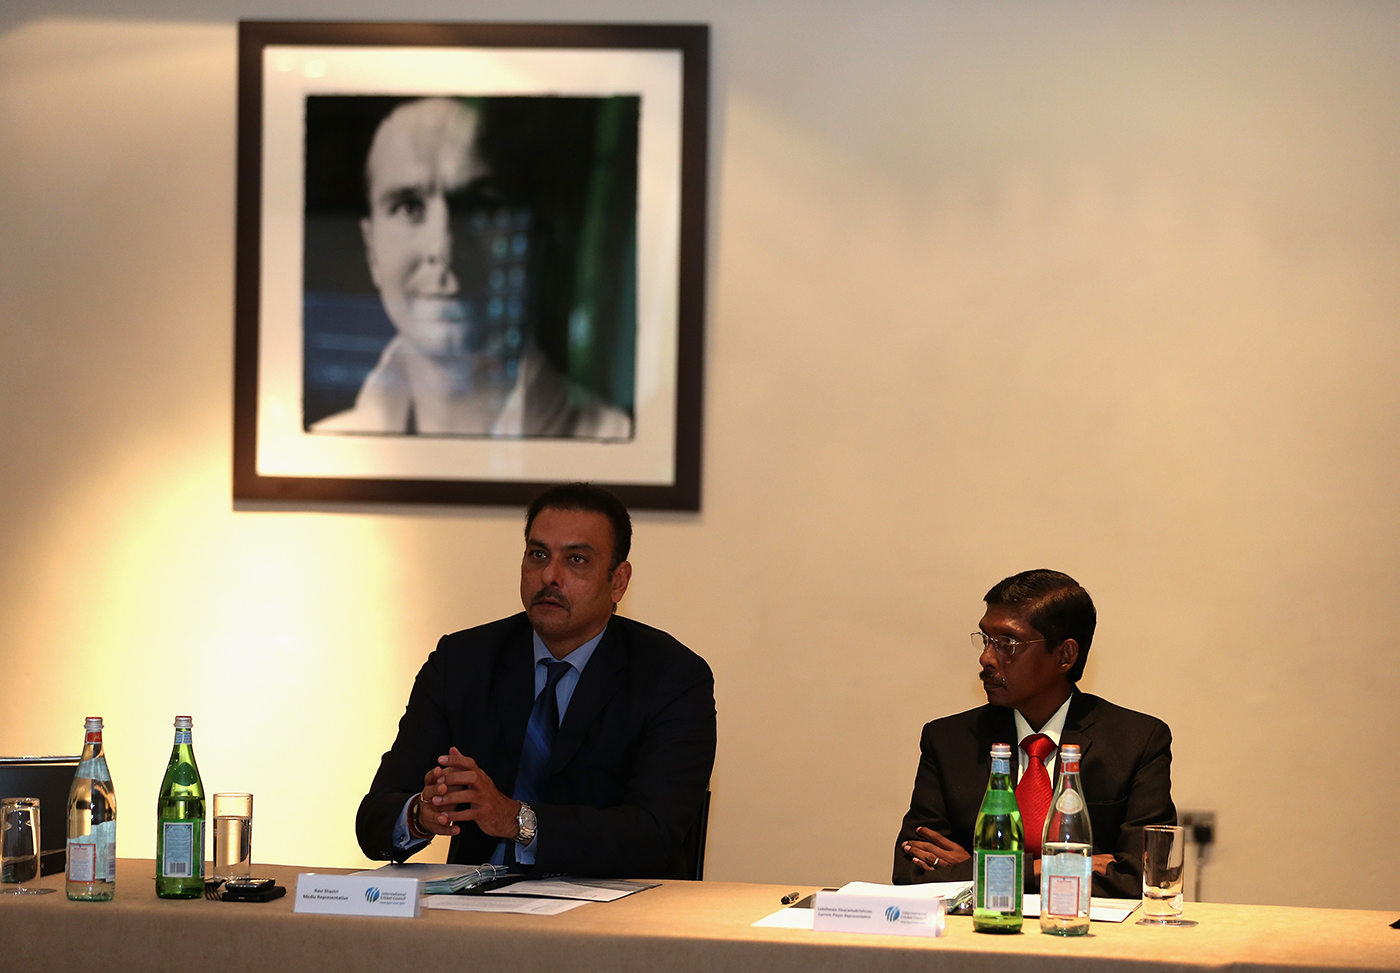 With old mate Shastri at an ICC Cricket Committee meeting in 2013